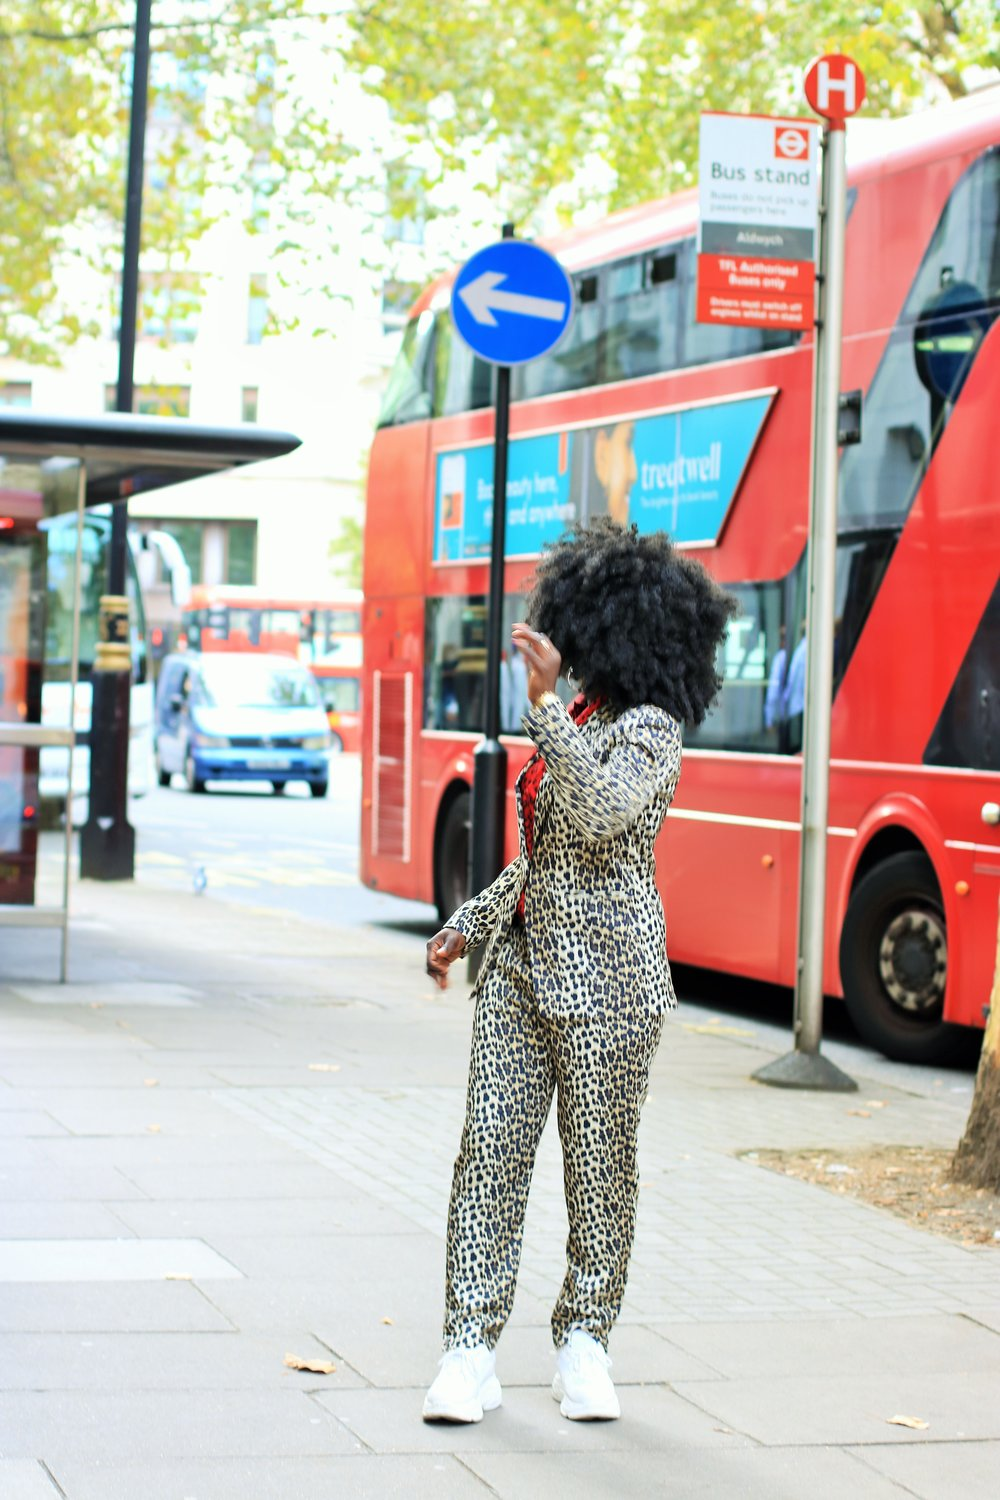 Street_Style_Leopard_Suits